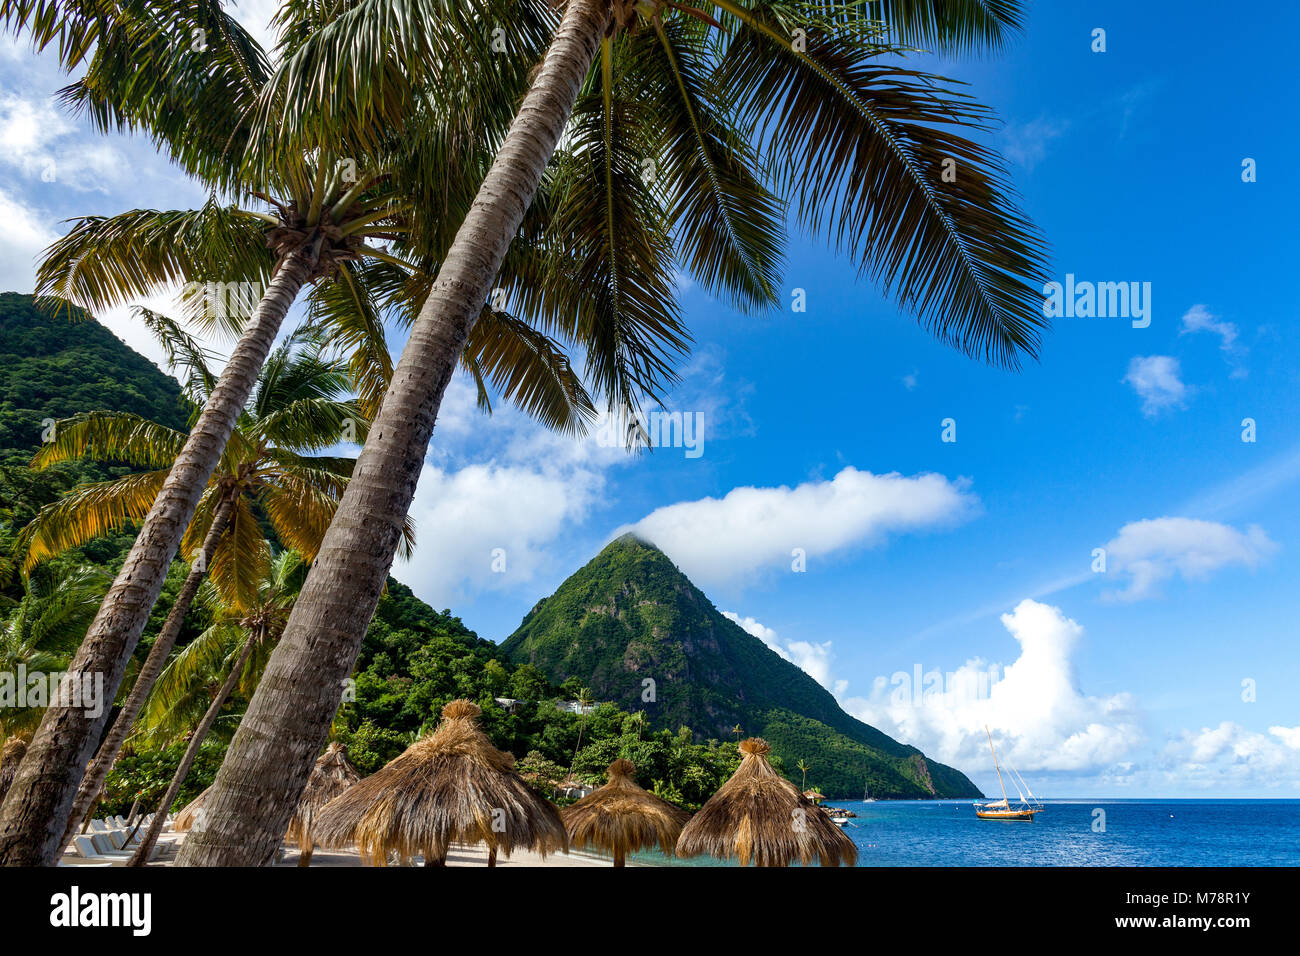 Gros Piton, with palm trees and thatched sun umbrellas, Sugar Beach, St. Lucia, Windward Islands, West Indies Caribbean, - Stock Image